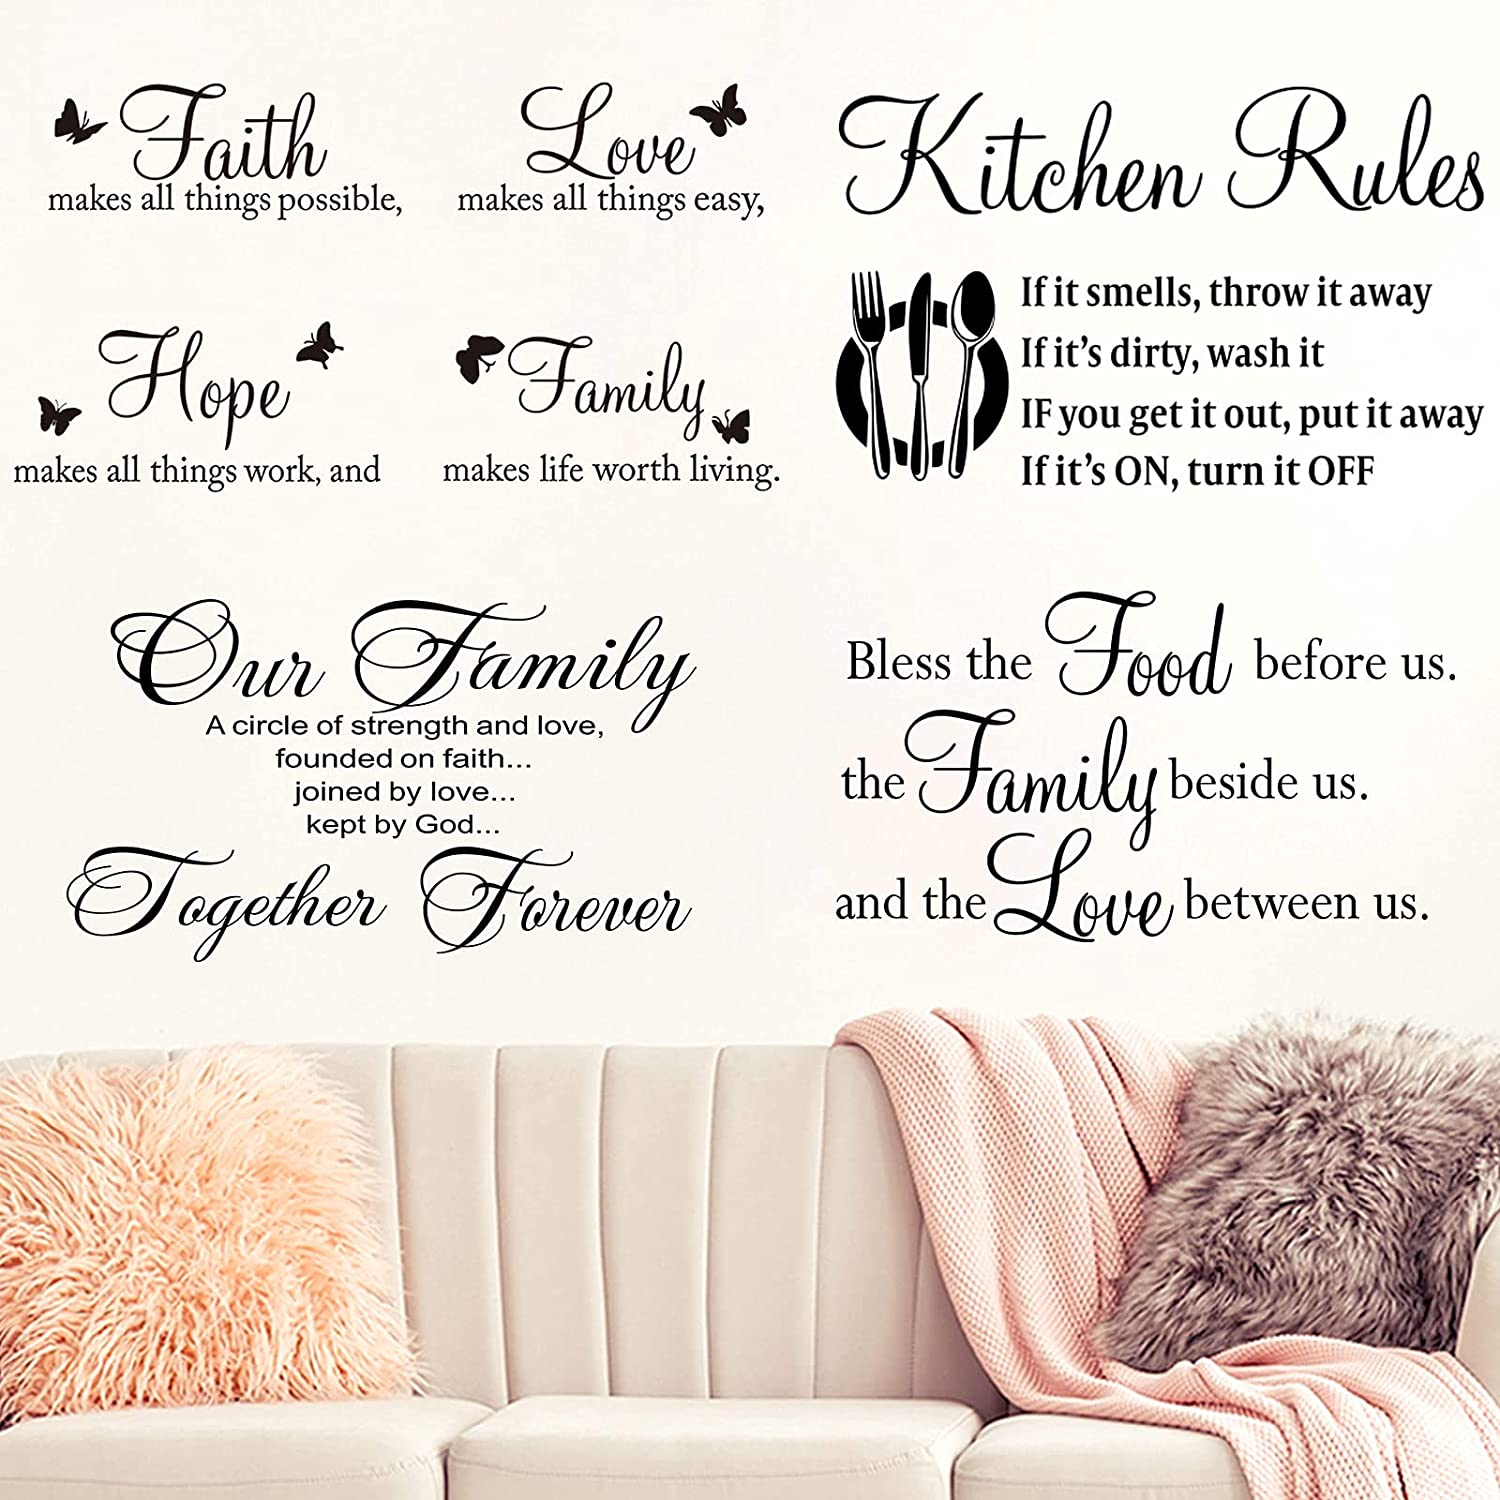 4 Pieces Vinyl Wall Quotes Stickers Family Wall Decal Set Faith Hope Love Scripture Stickers Kitchen Rules Wall Stickers Bless The Food Wall Decor for Kitchen Dining Room Bedroom Living Room